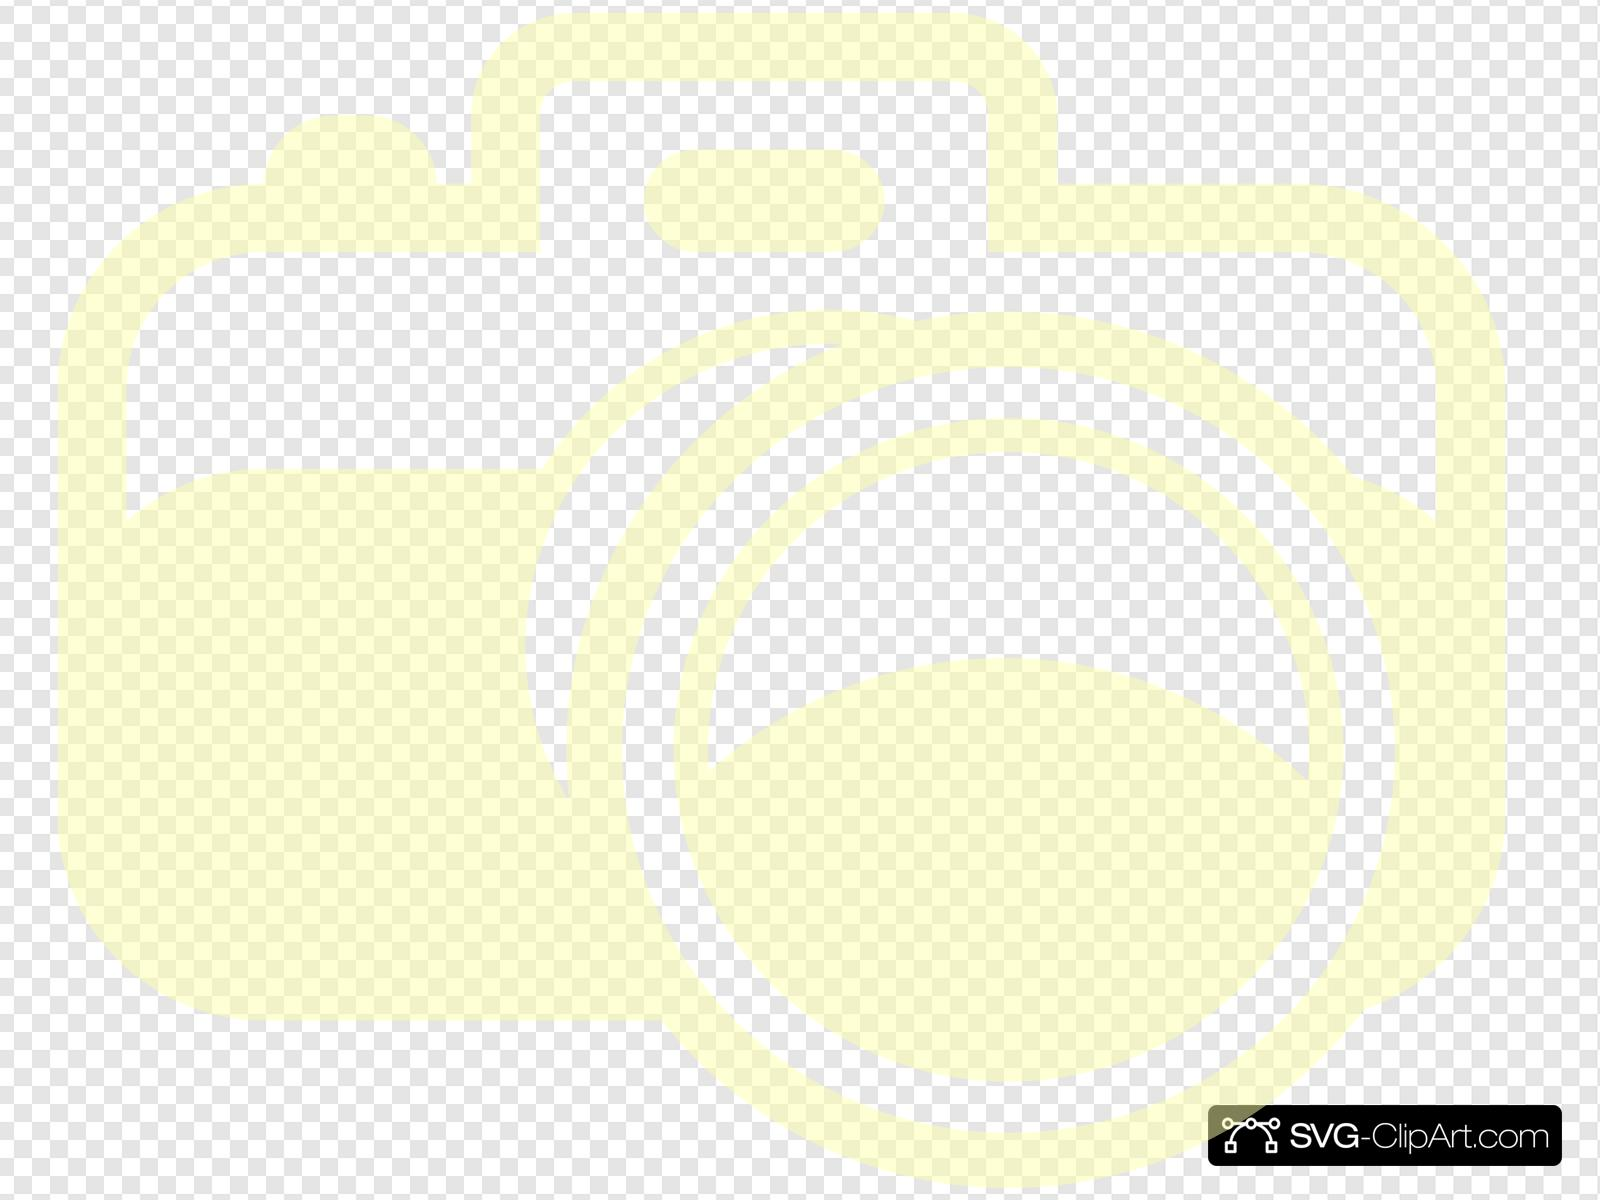 Yellow Camera Clip art, Icon and SVG.